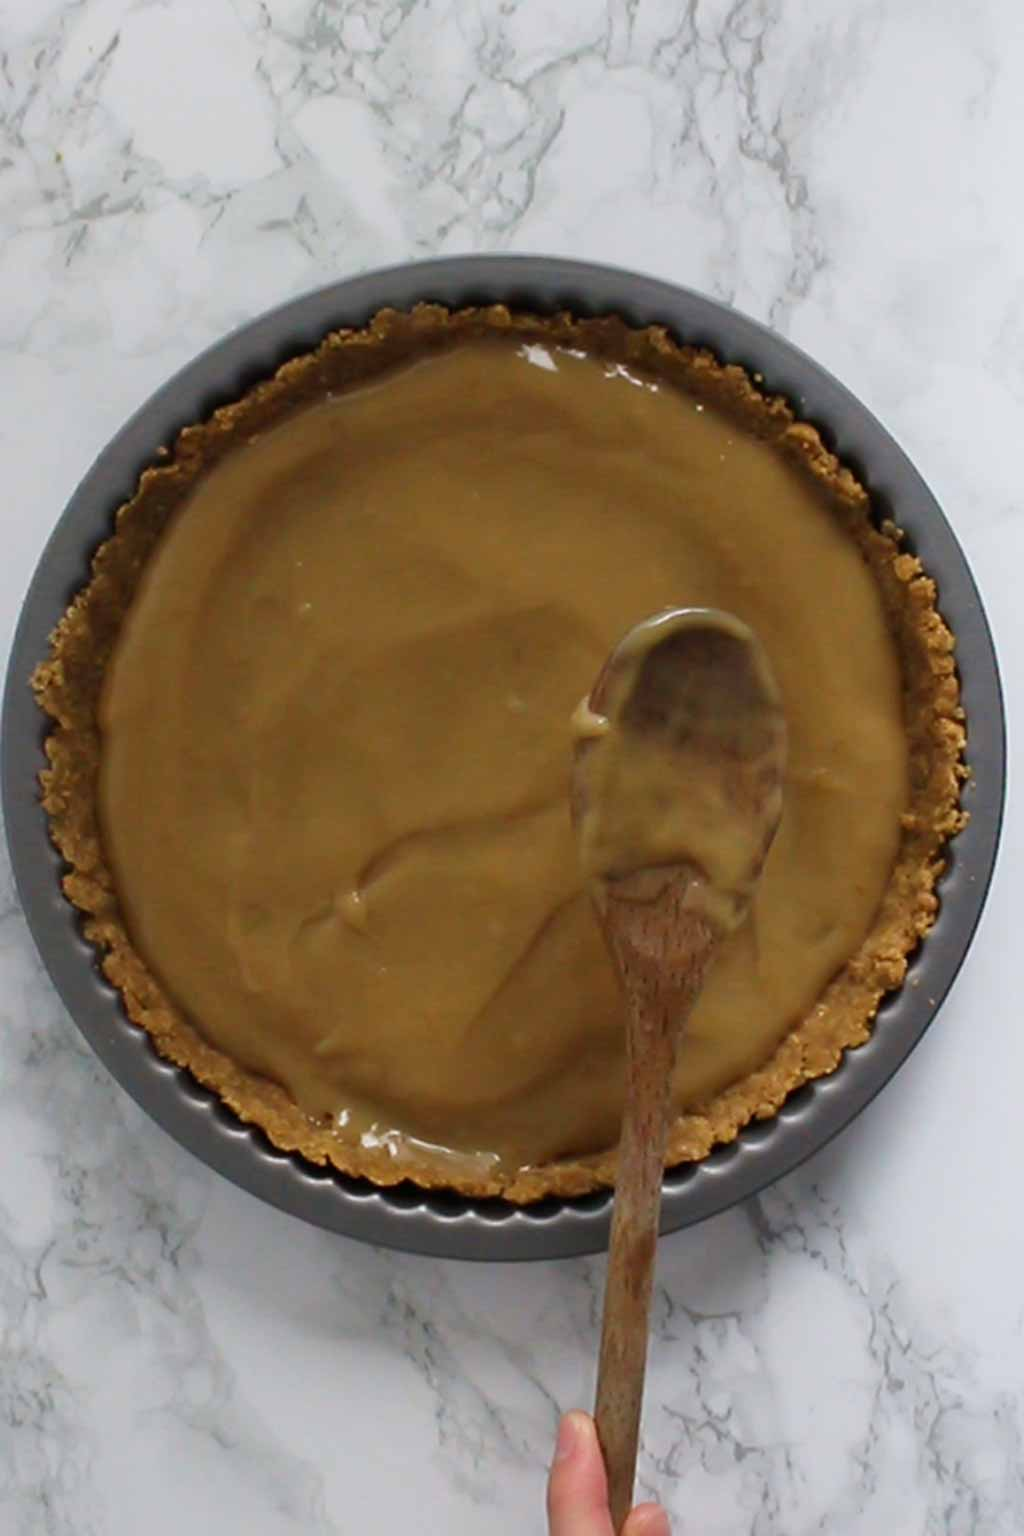 Spreading Caramel Onto Biscuit Base